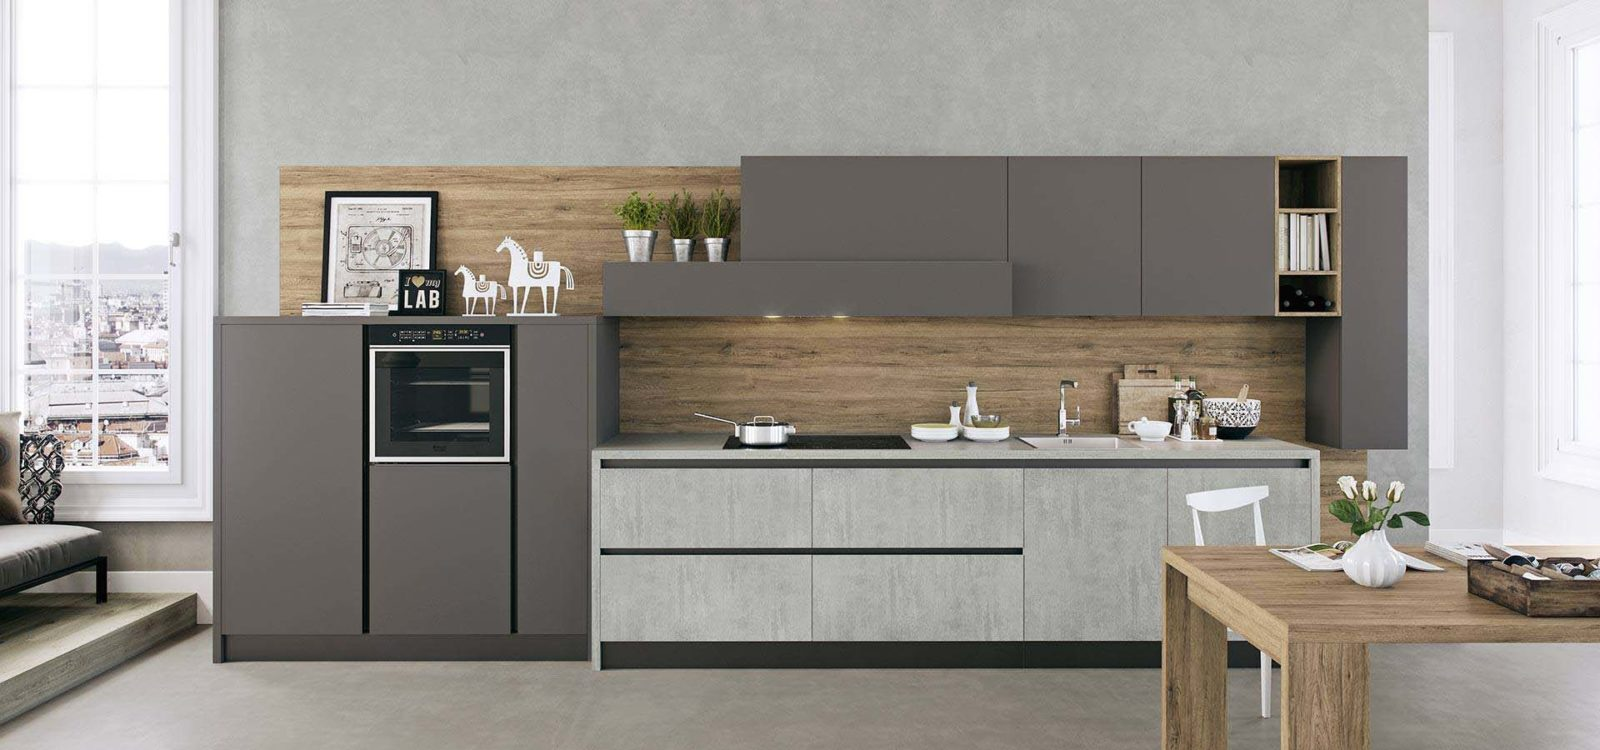 Beautiful Cucina Moderna Lineare Photos - Skilifts.us - skilifts.us